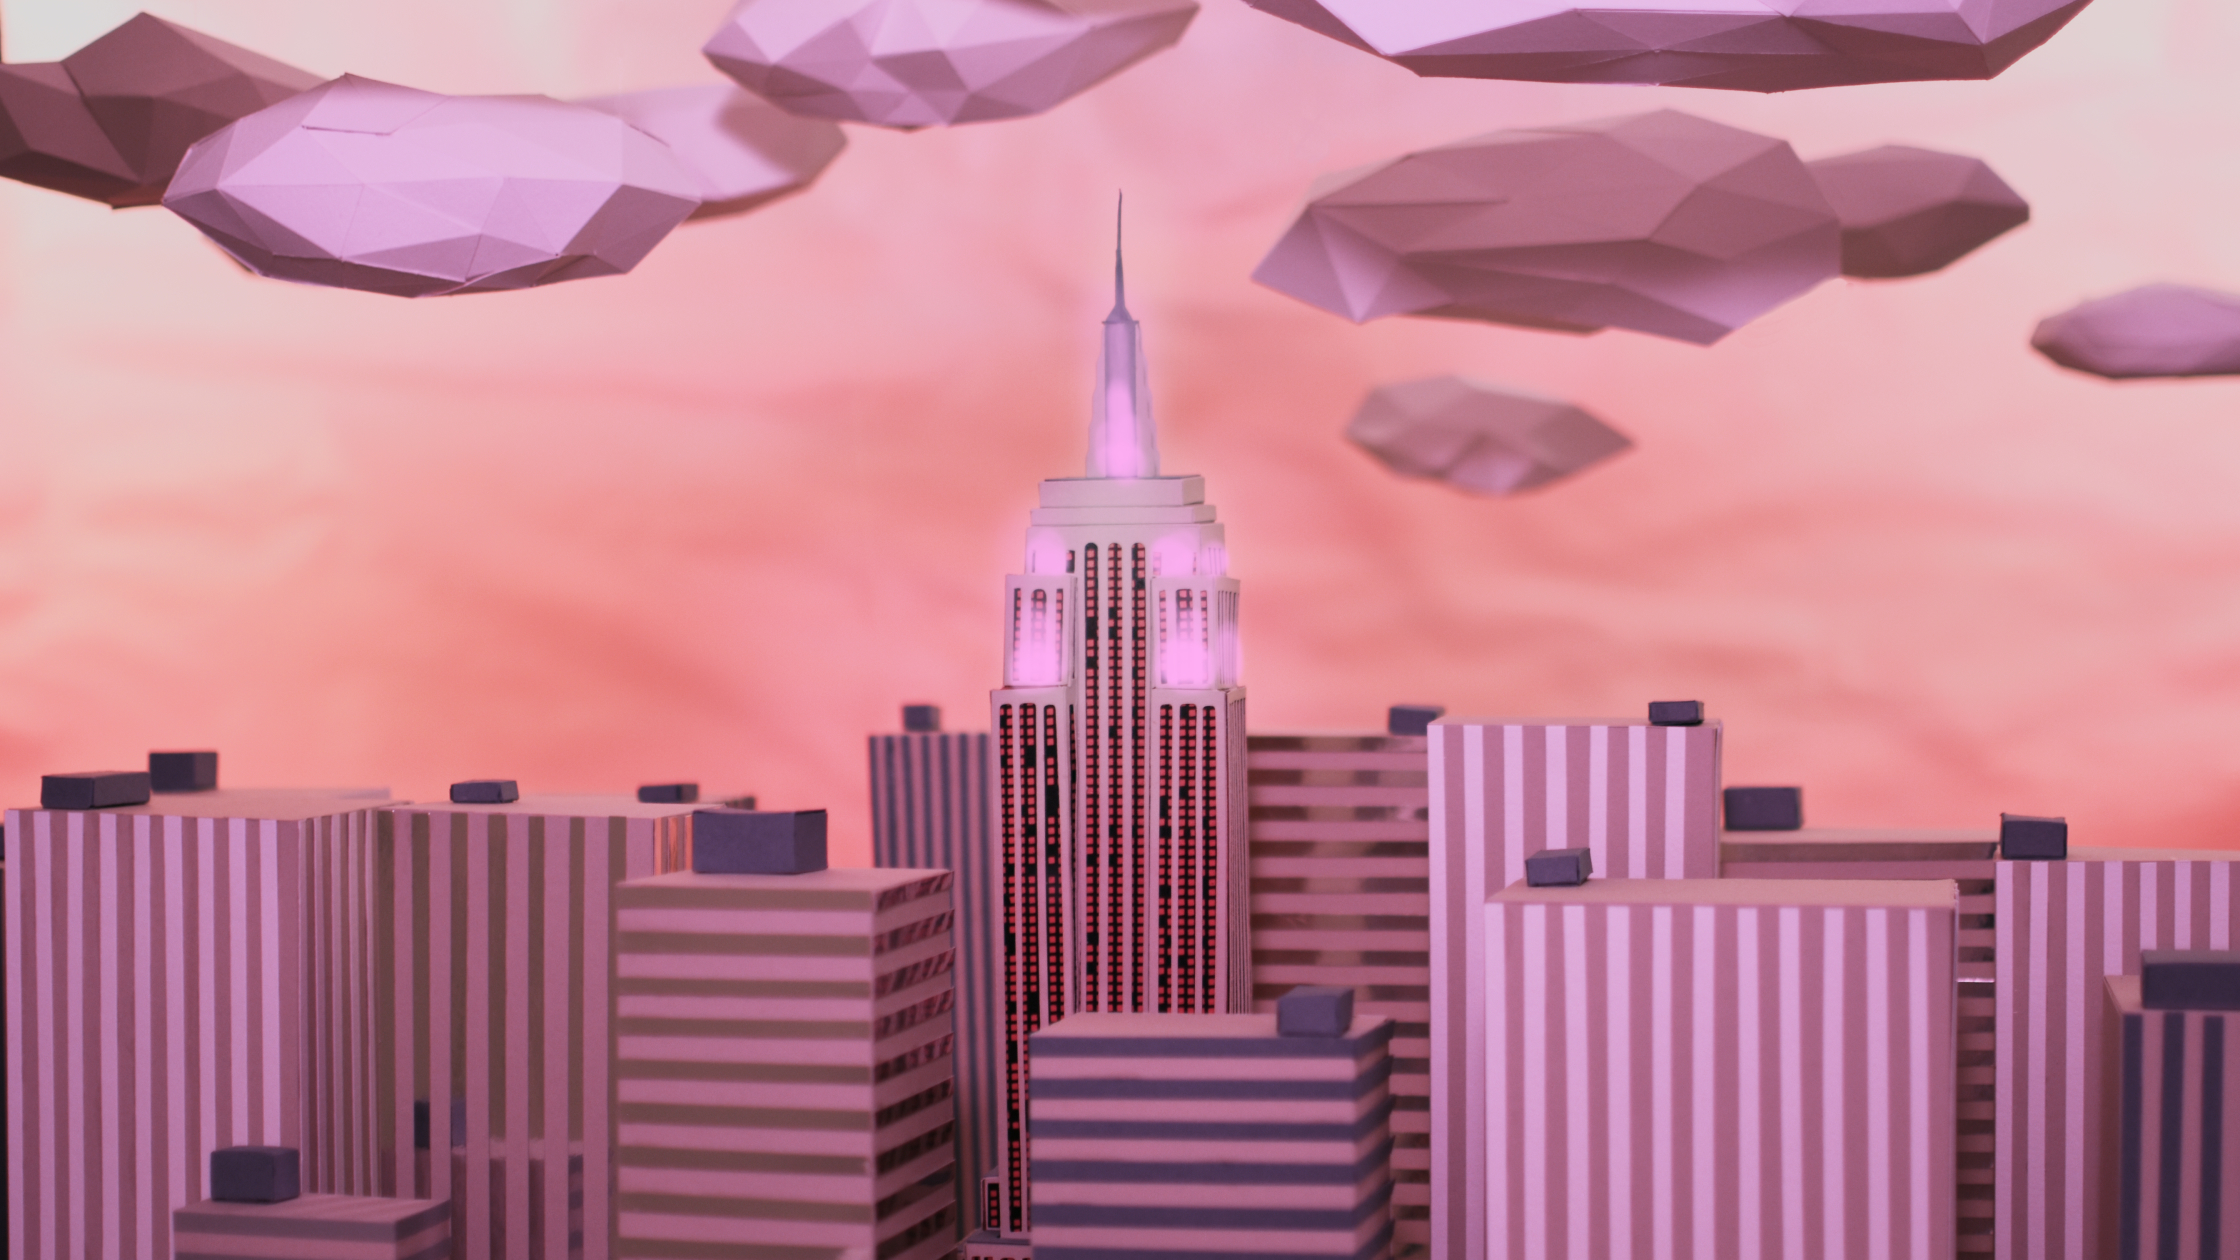 STAGE BACKGROUNDS 2 - NEW YORK.jpg